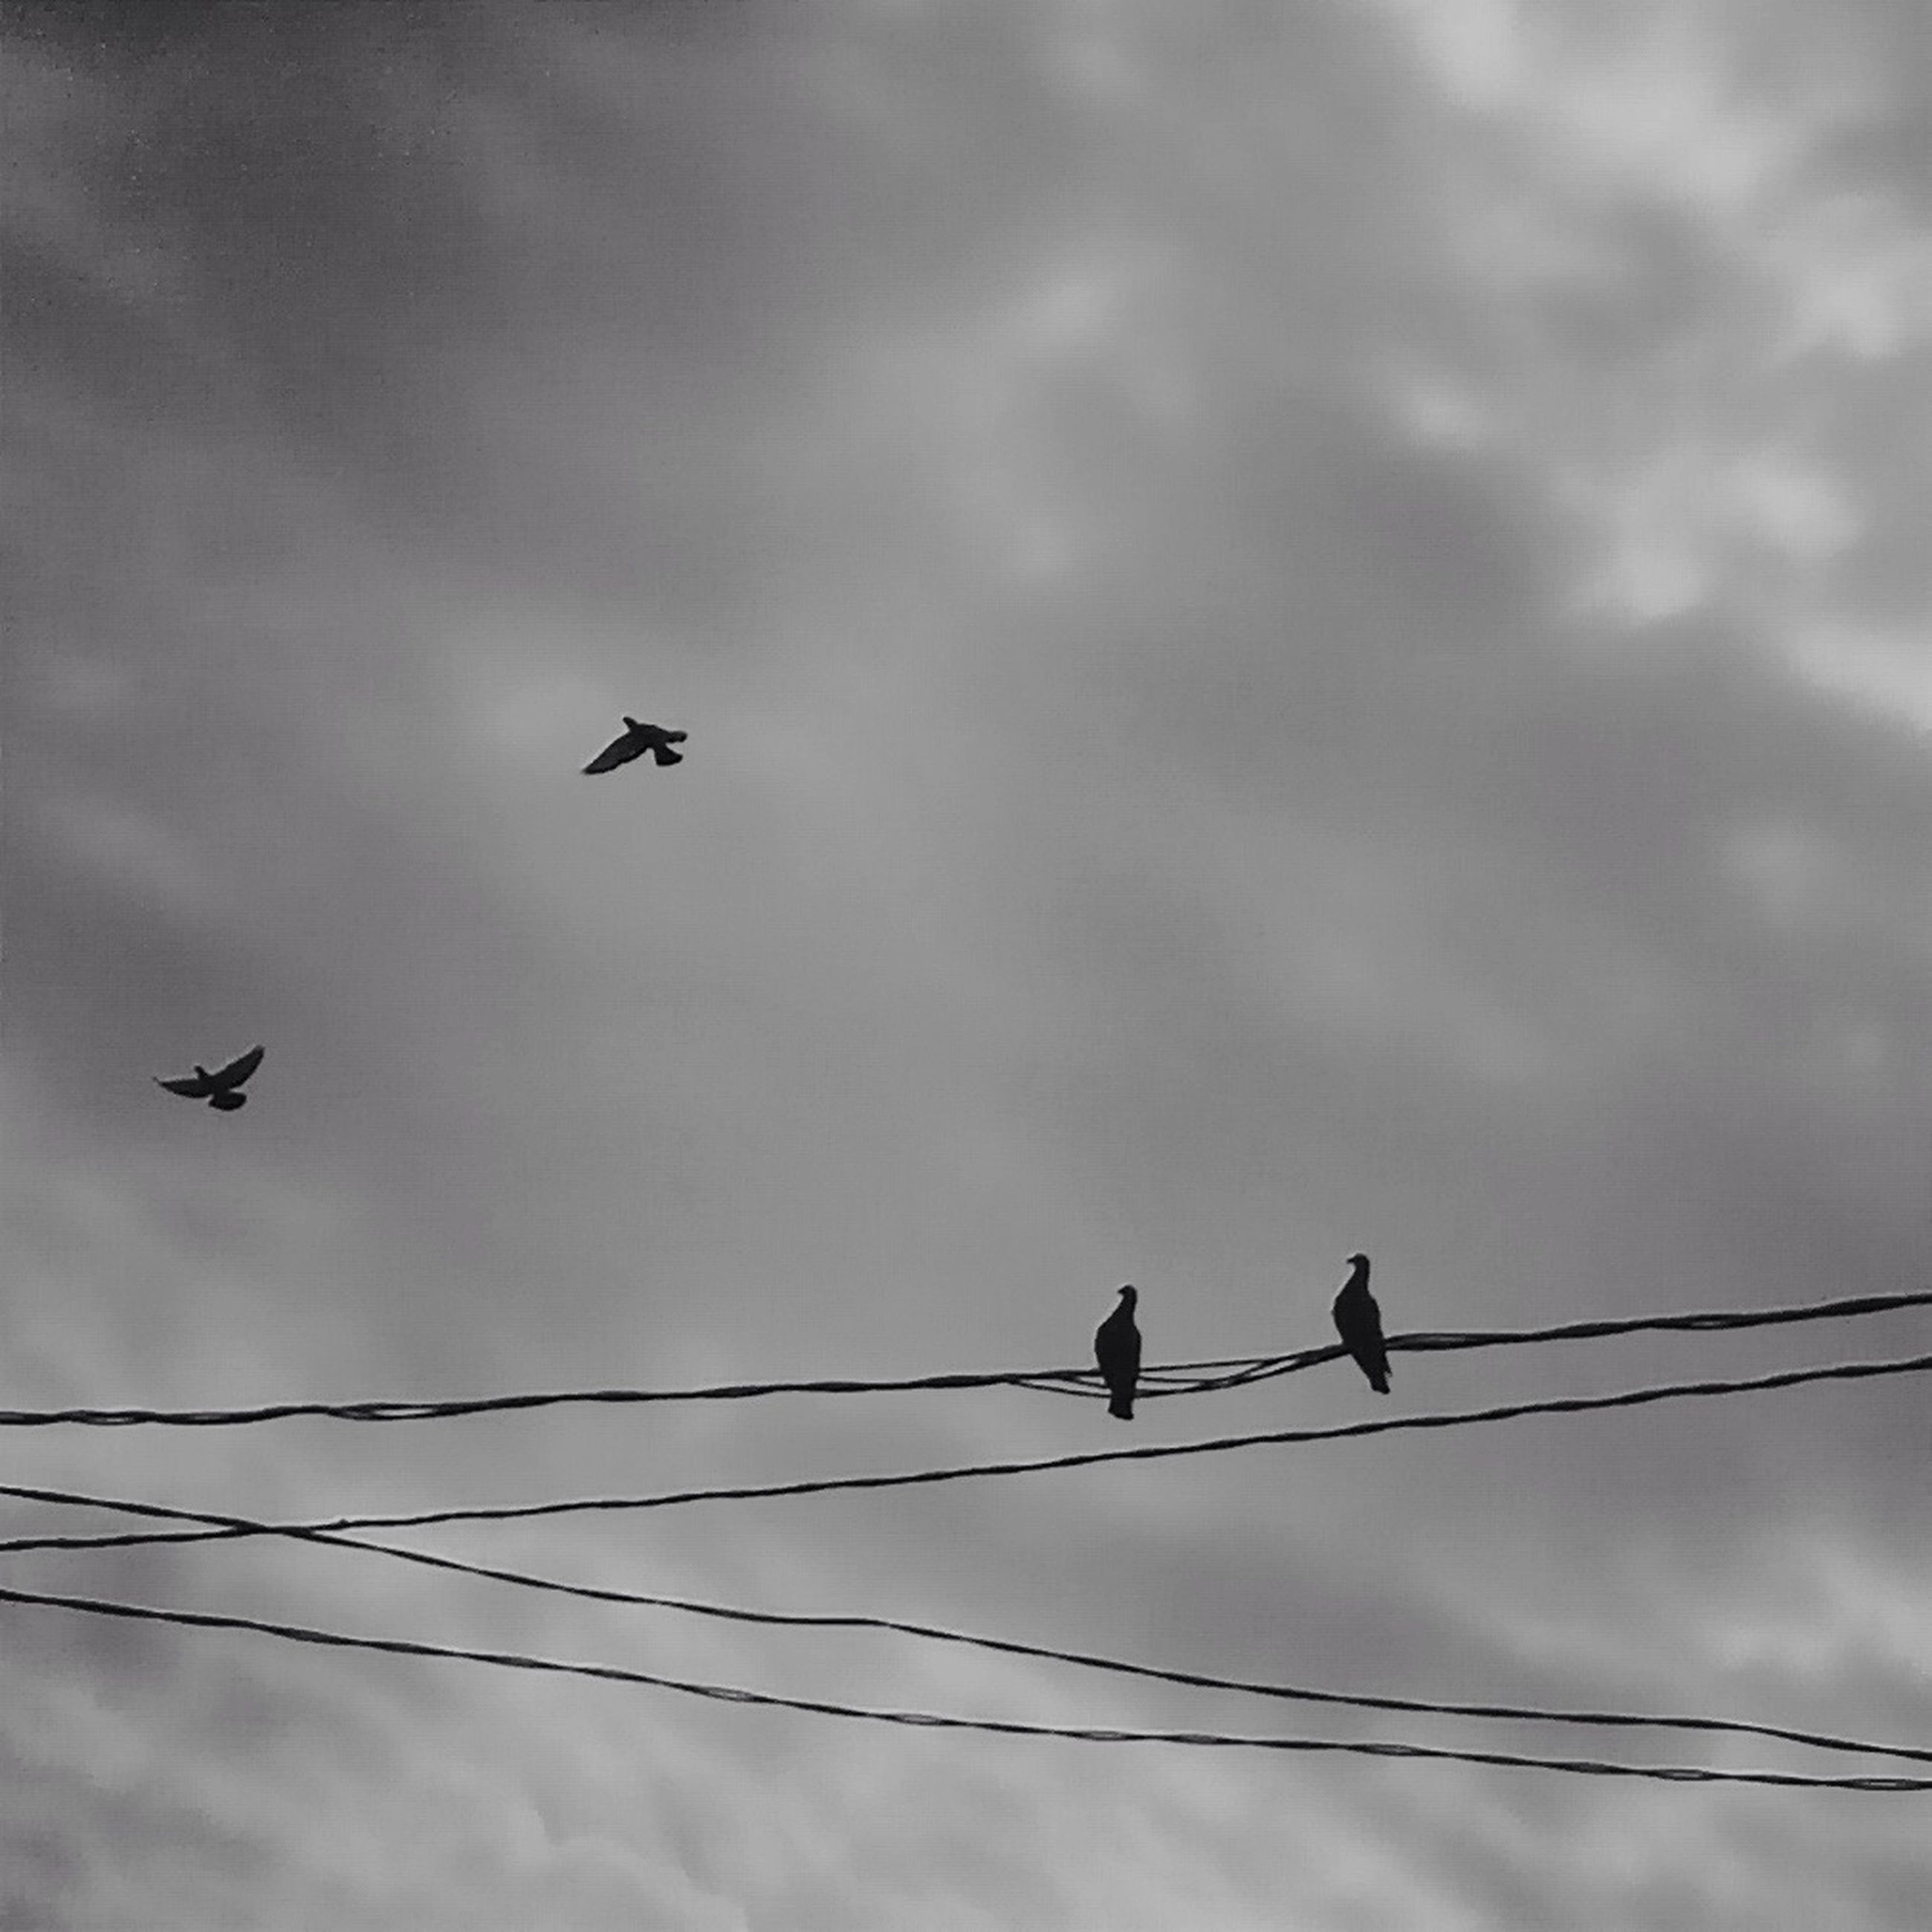 bird, animal themes, low angle view, animals in the wild, wildlife, flying, silhouette, sky, perching, power line, cable, connection, cloud - sky, avian, two animals, flock of birds, medium group of animals, nature, cloud